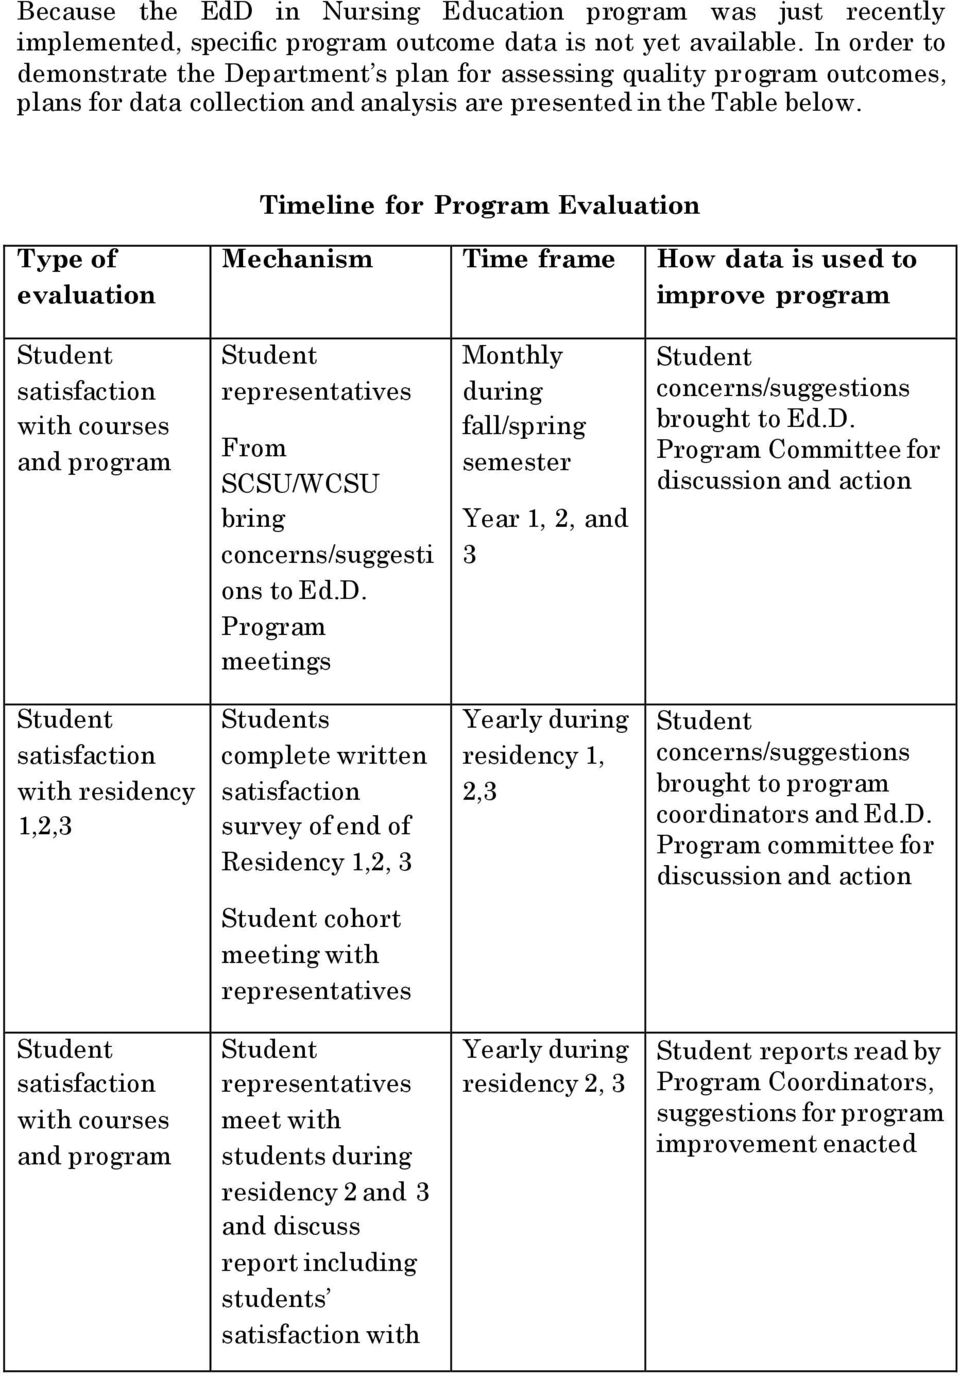 Timeline for Program Evaluation Type of evaluation Mechanism Time frame How data is used to improve program satisfaction with courses and program representatives From SCSU/WCSU bring